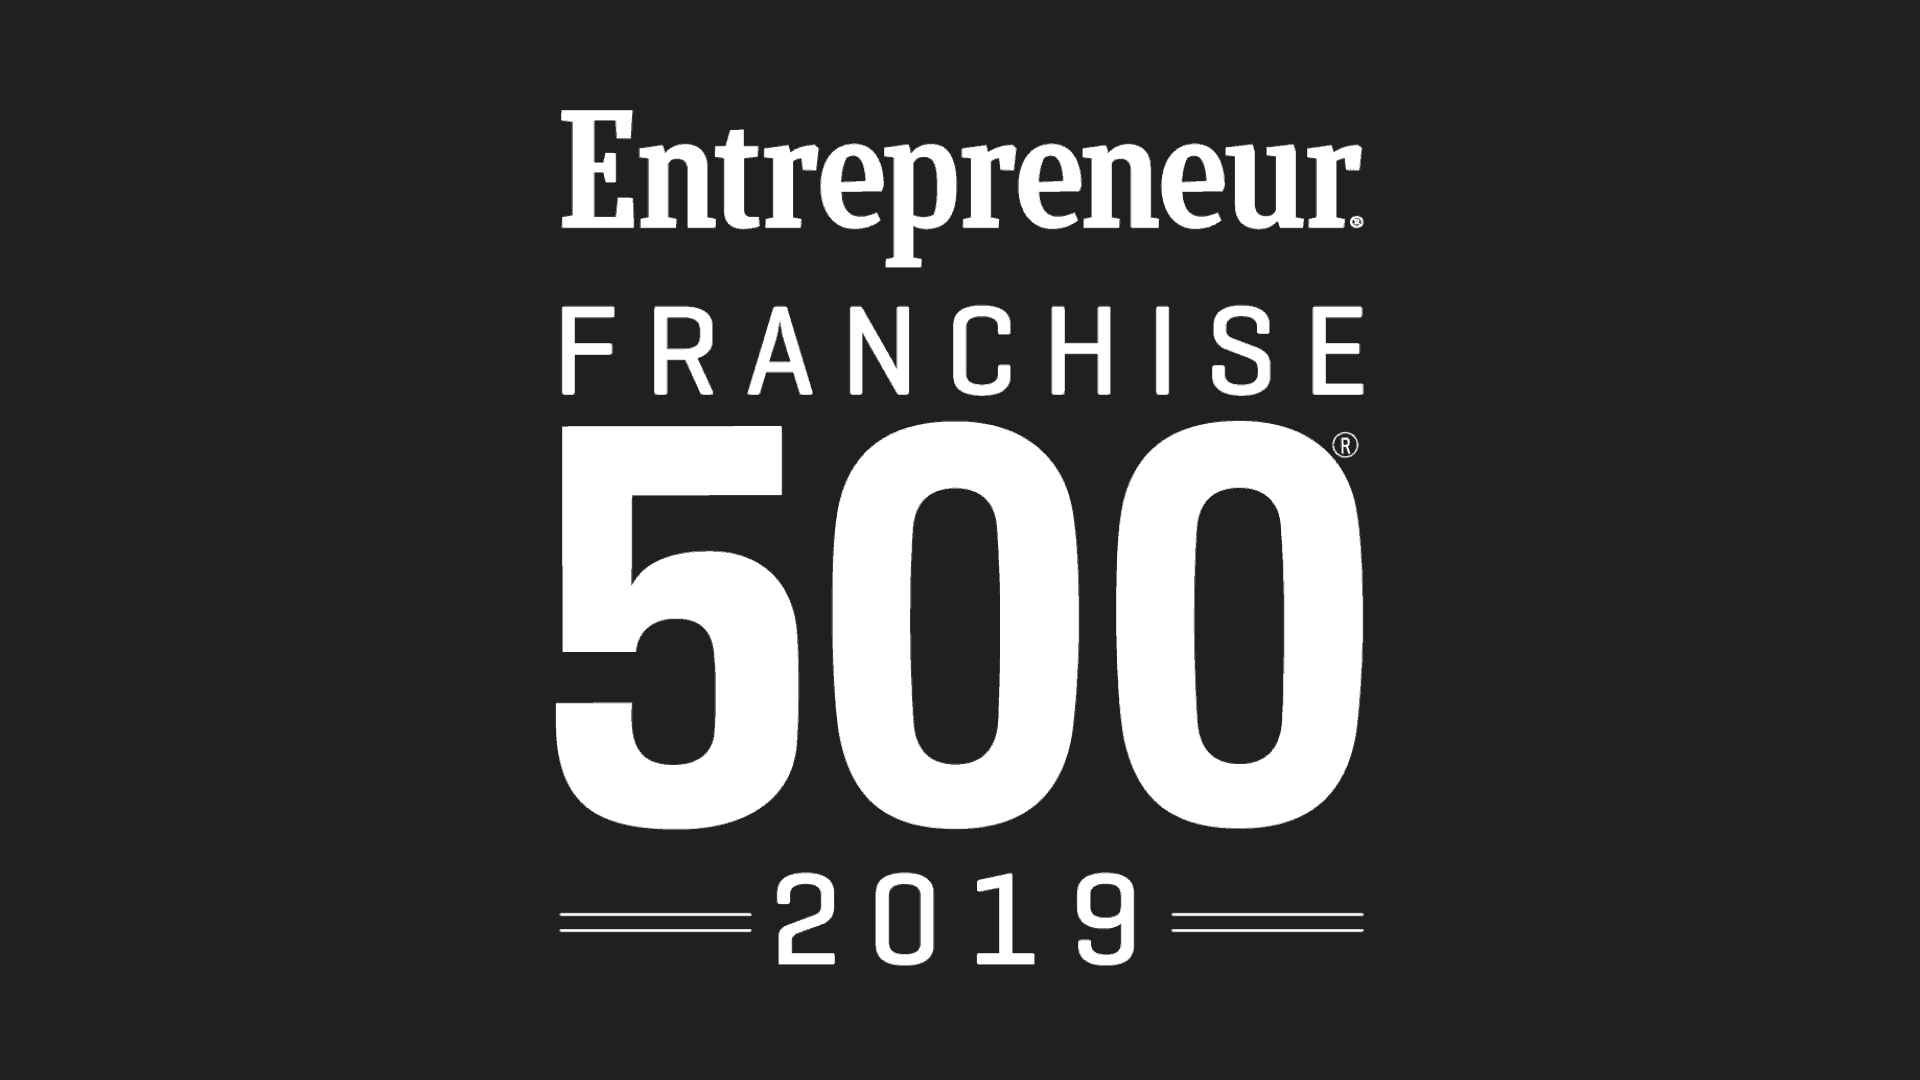 Entrepreneur Franchise 500 2019 logo featured